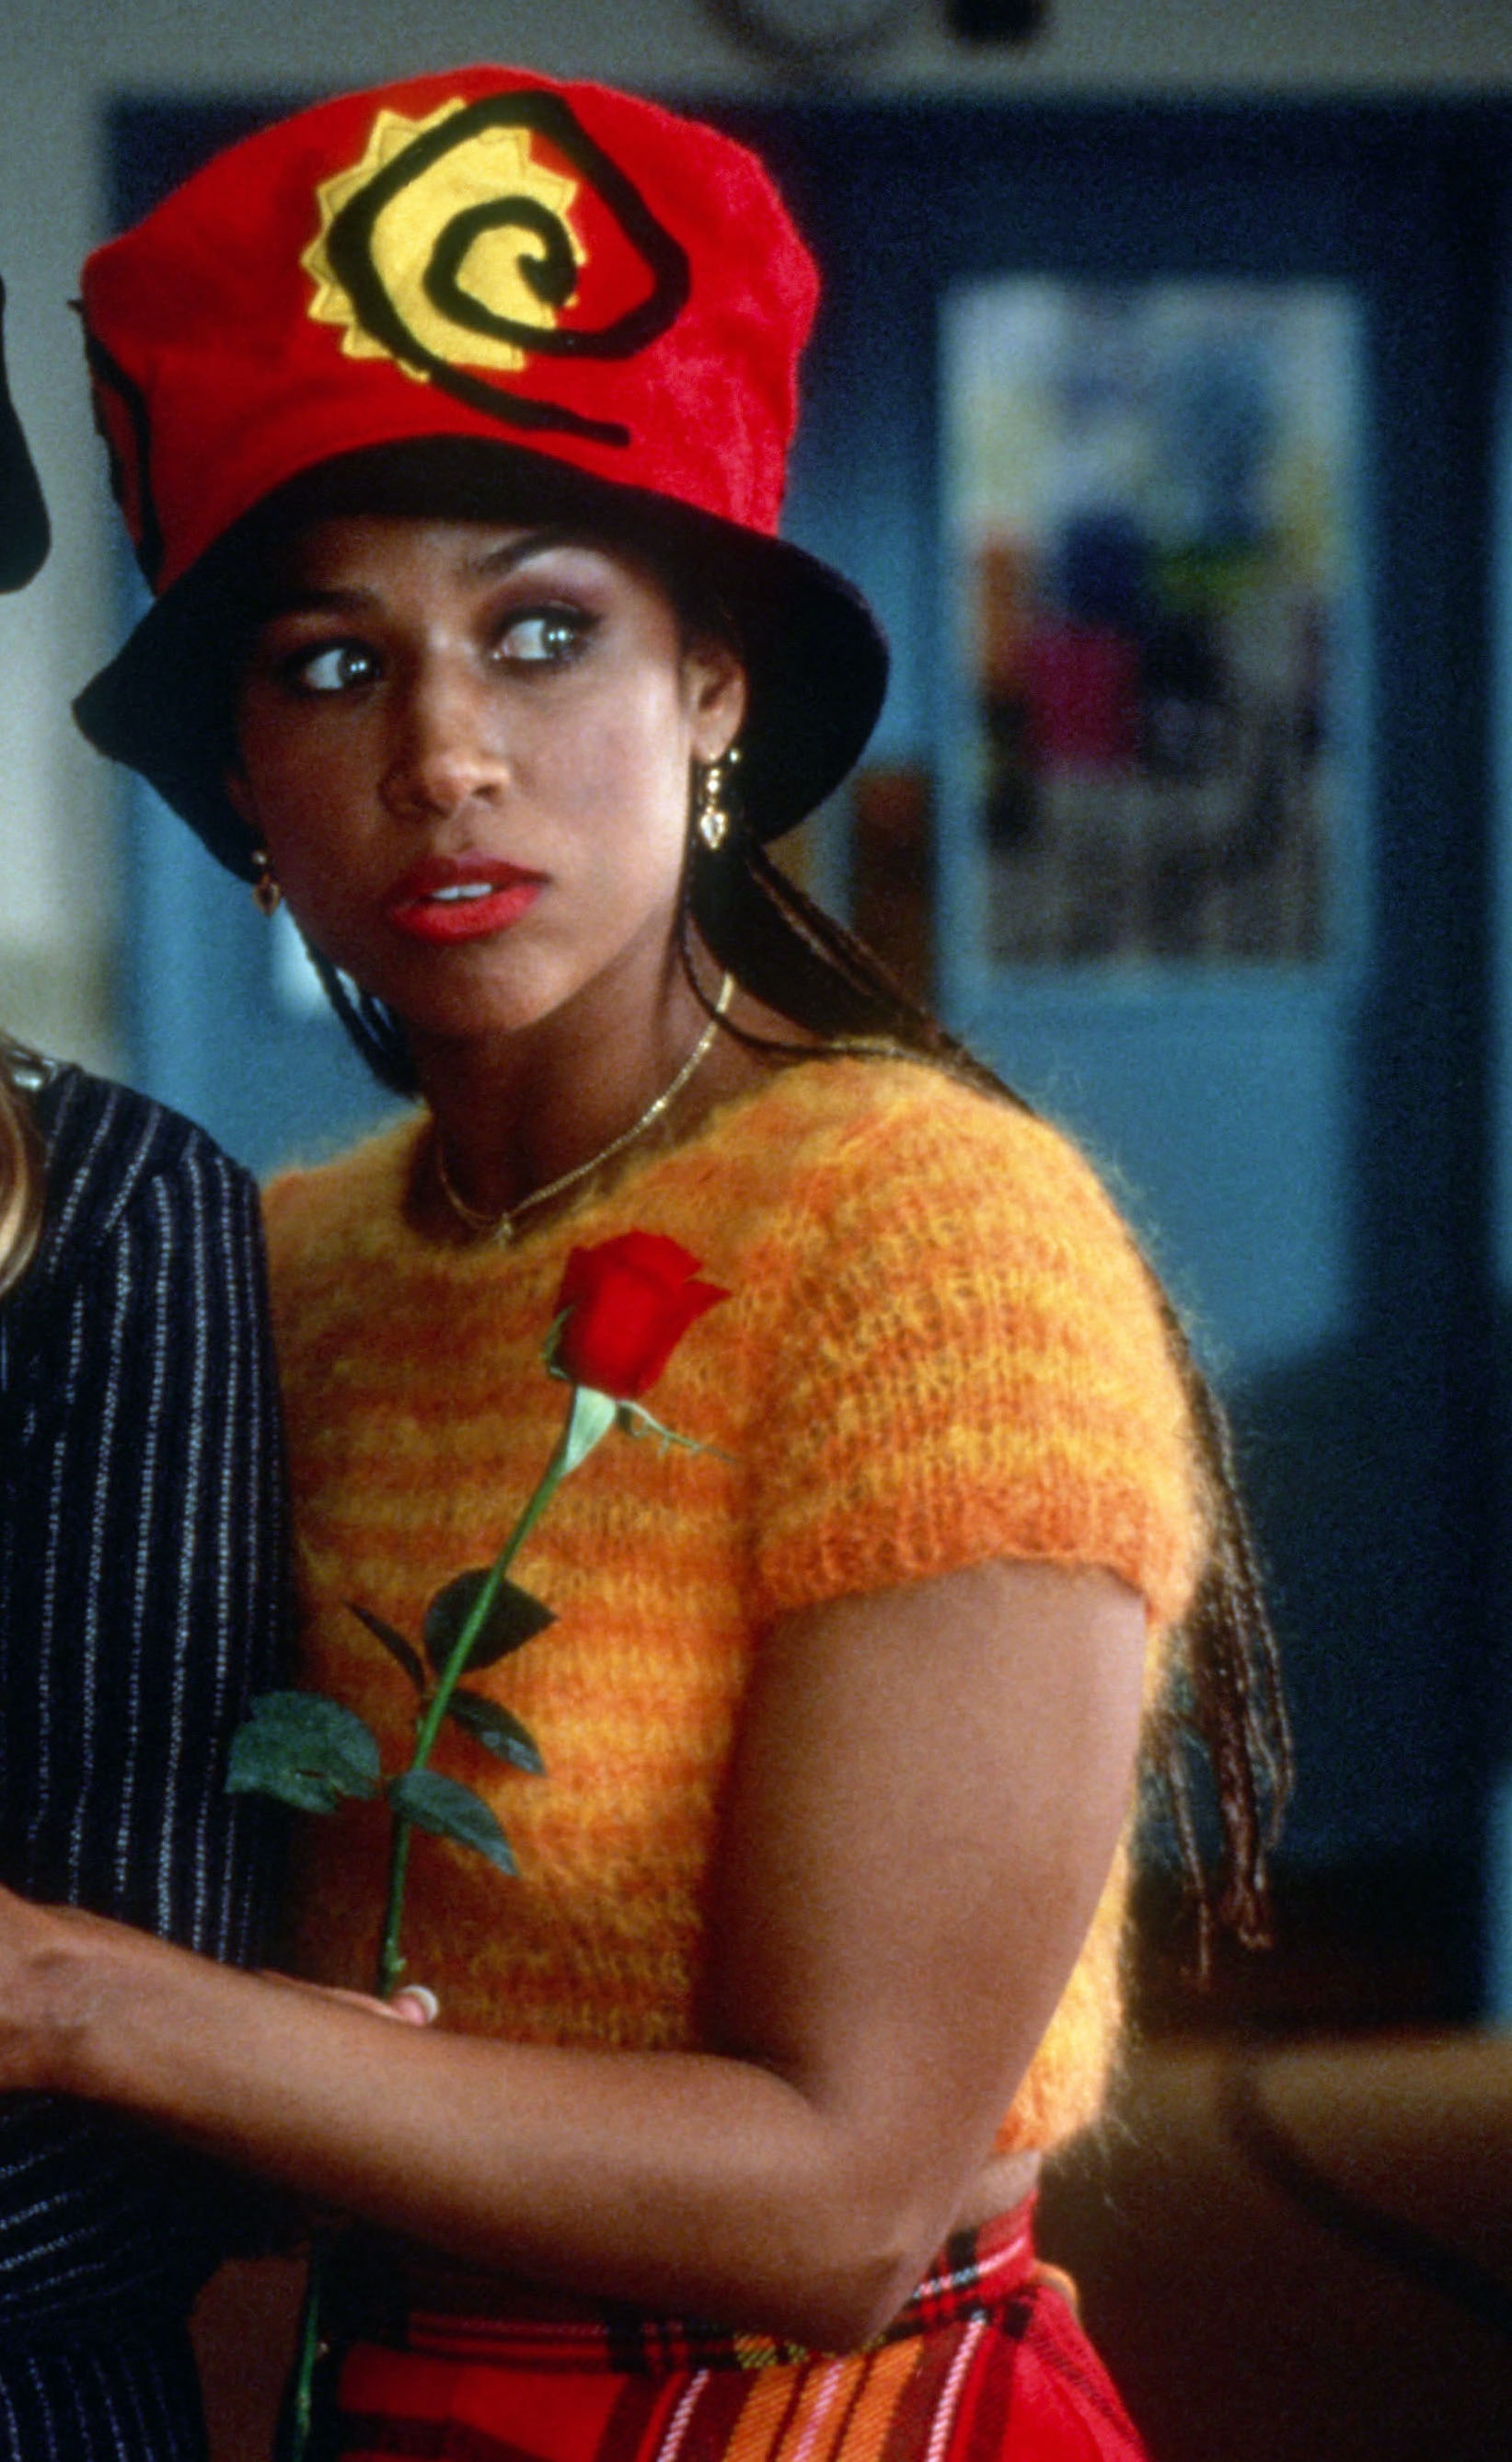 Clueless Iconic Fashion Looks Decoded By The Costume Designer Who Created Them